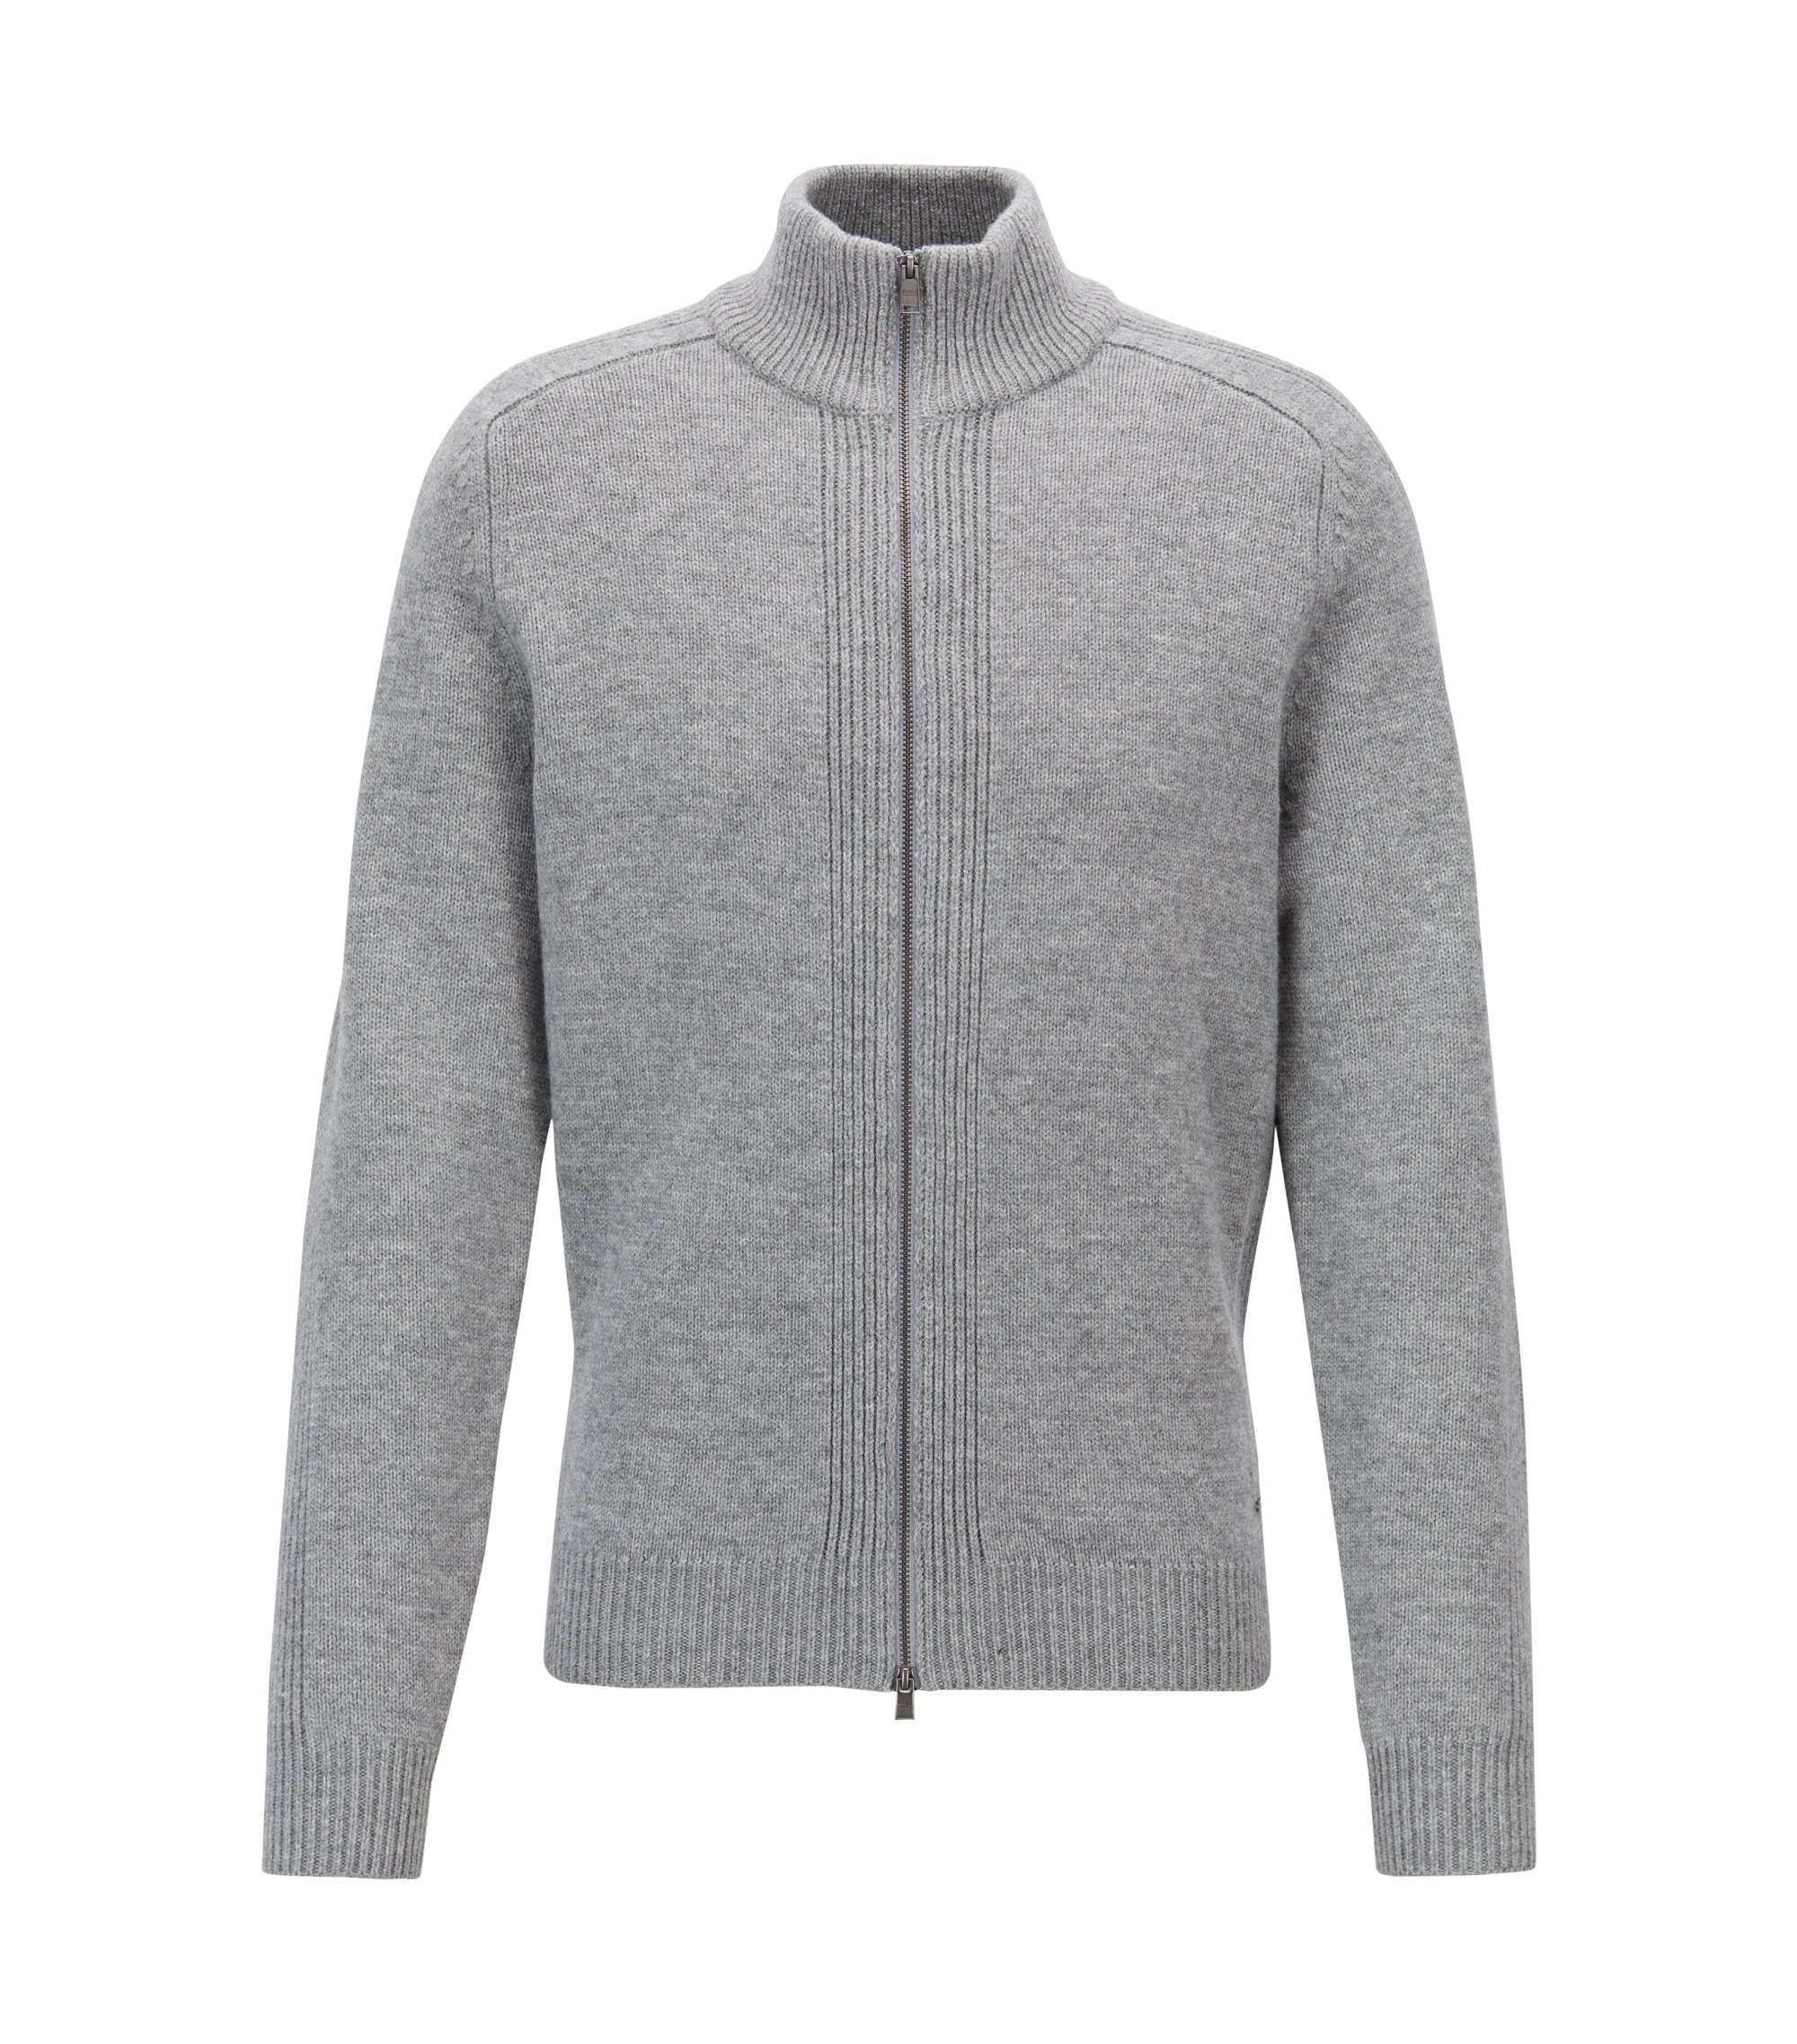 Stand-collar sweater in lambswool with two-way zip, Silver